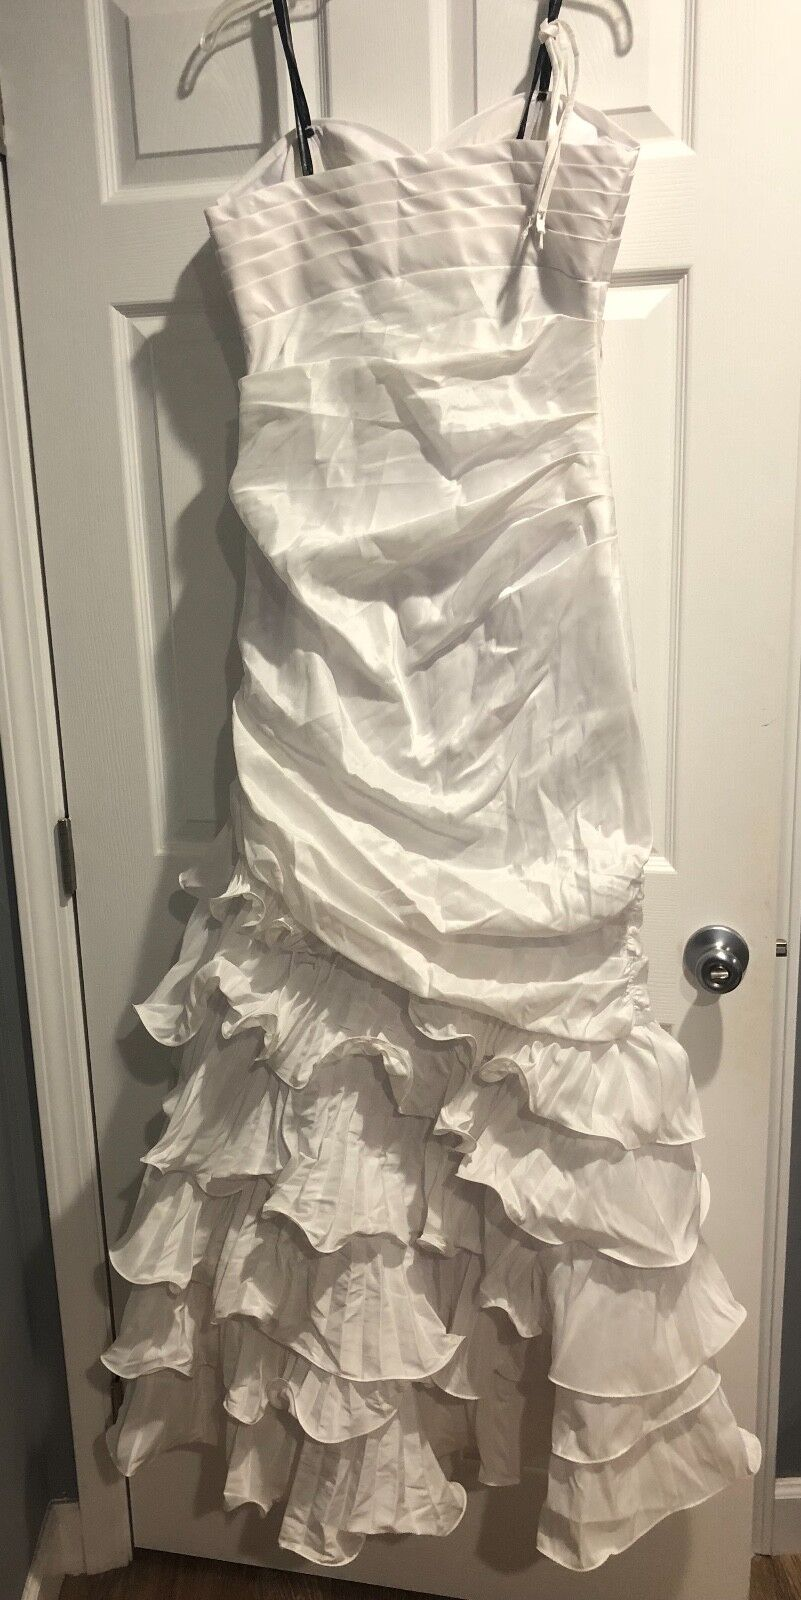 Dalia MacPhee Strapless Taffeta Tiered Mermaid Ruffle White White White Wedding Gown Dress   b24286